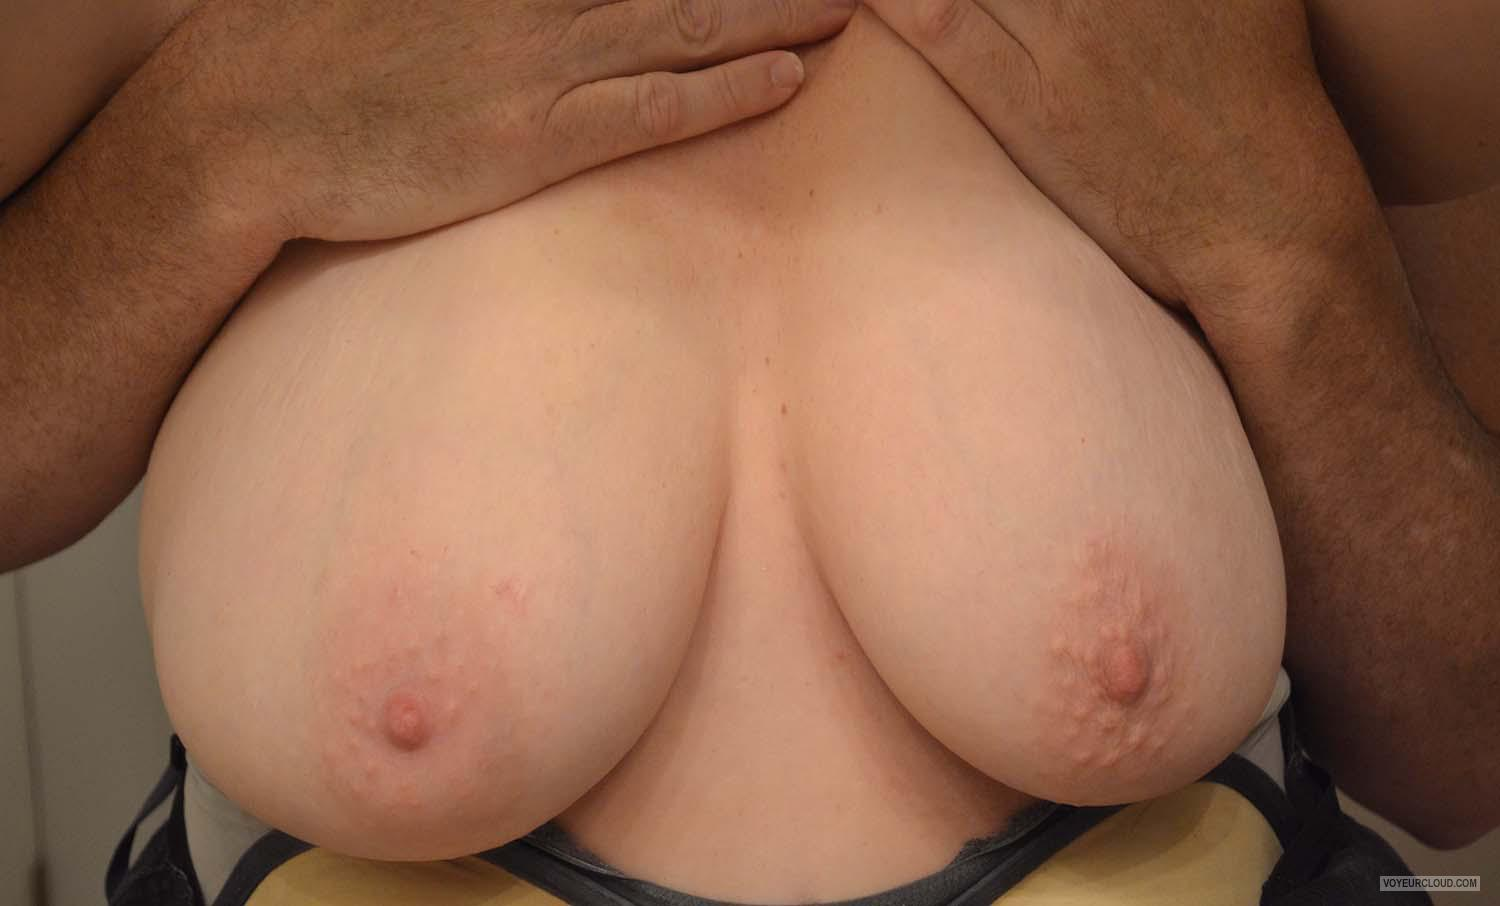 Tit Flash: Wife's Big Tits - Sexy Boobs from United States